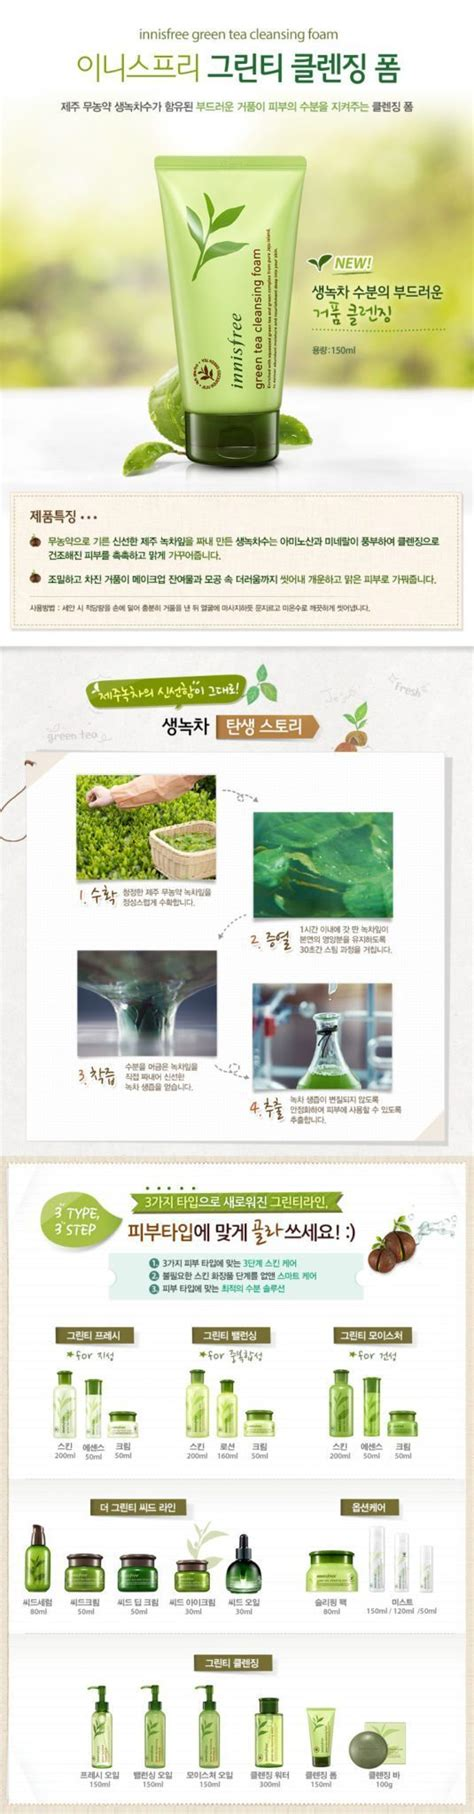 Detox Cleanse Tea Malaysia by Innisfree Green Tea Cleansing Foam 150ml Seoul Next By You